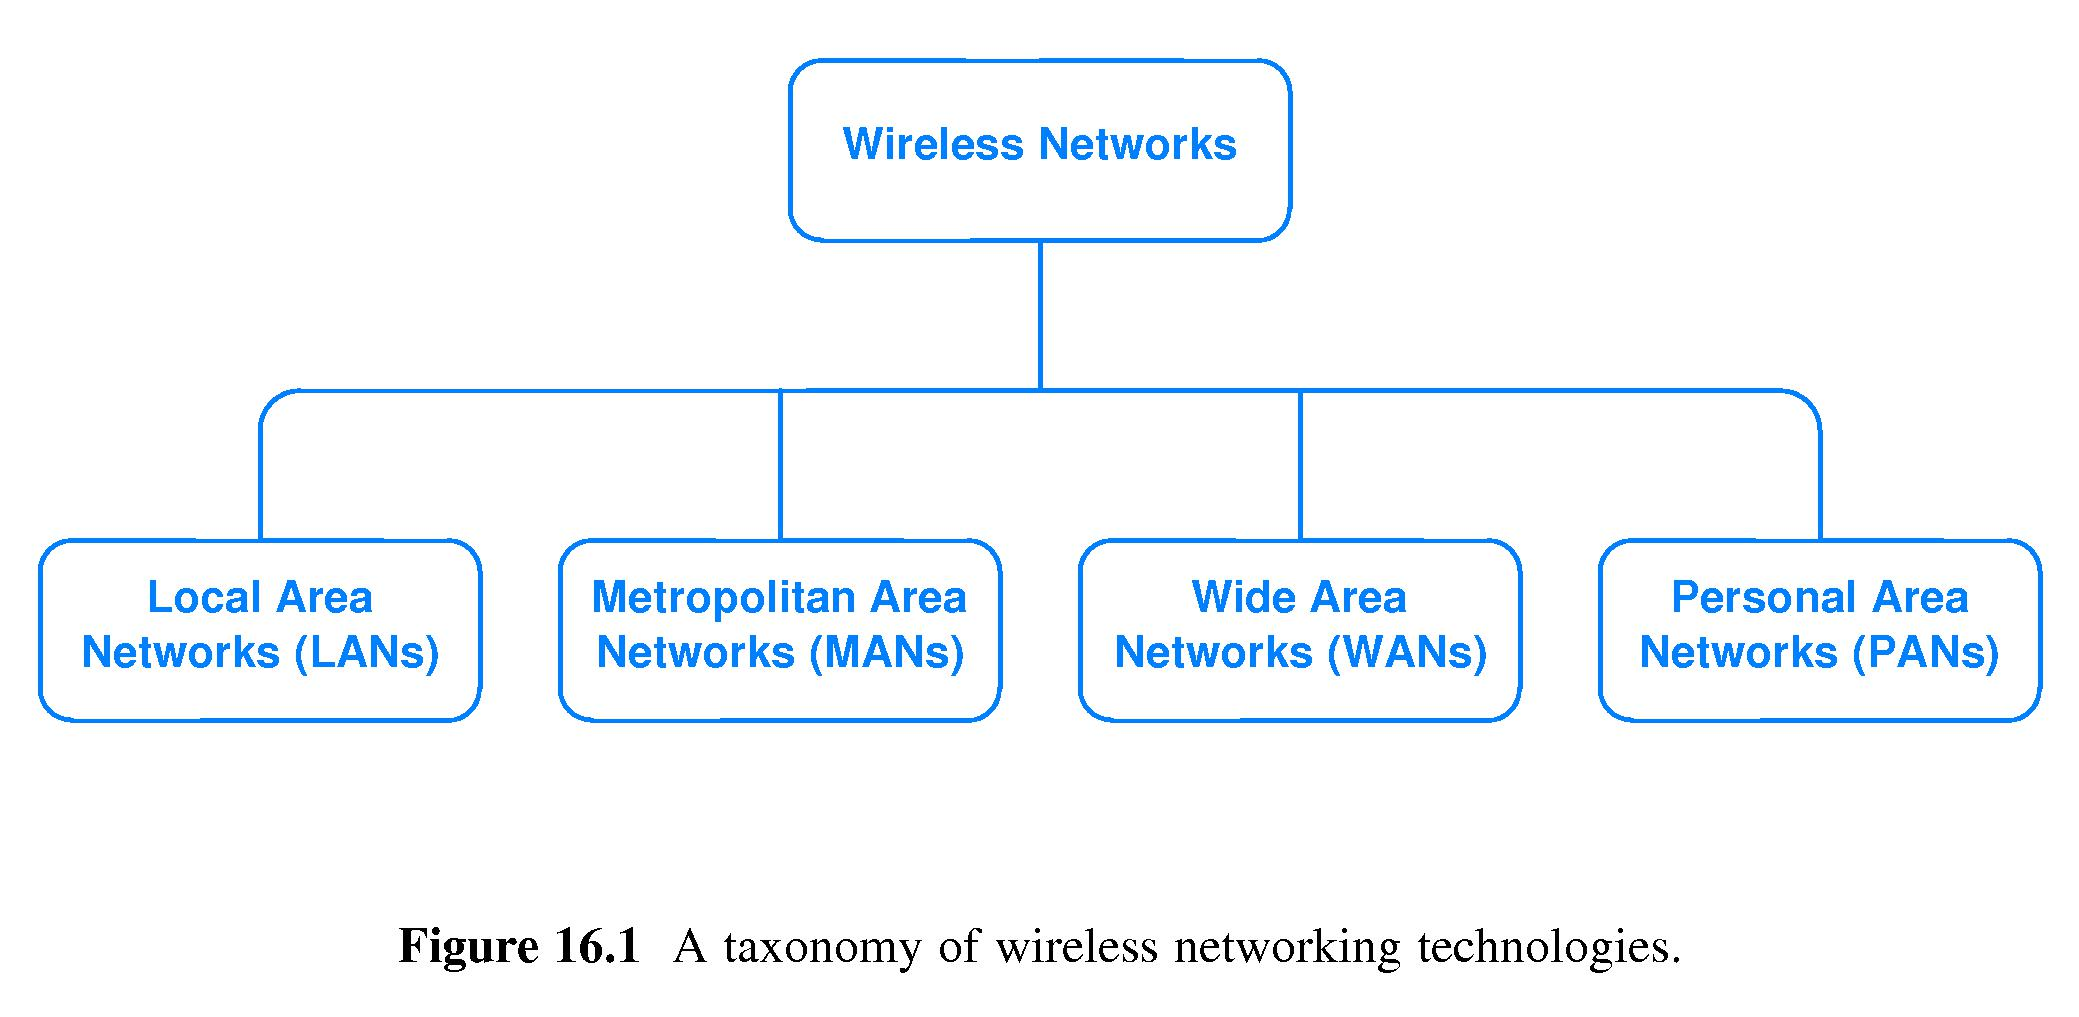 ... Personal Area Networks (PANs)